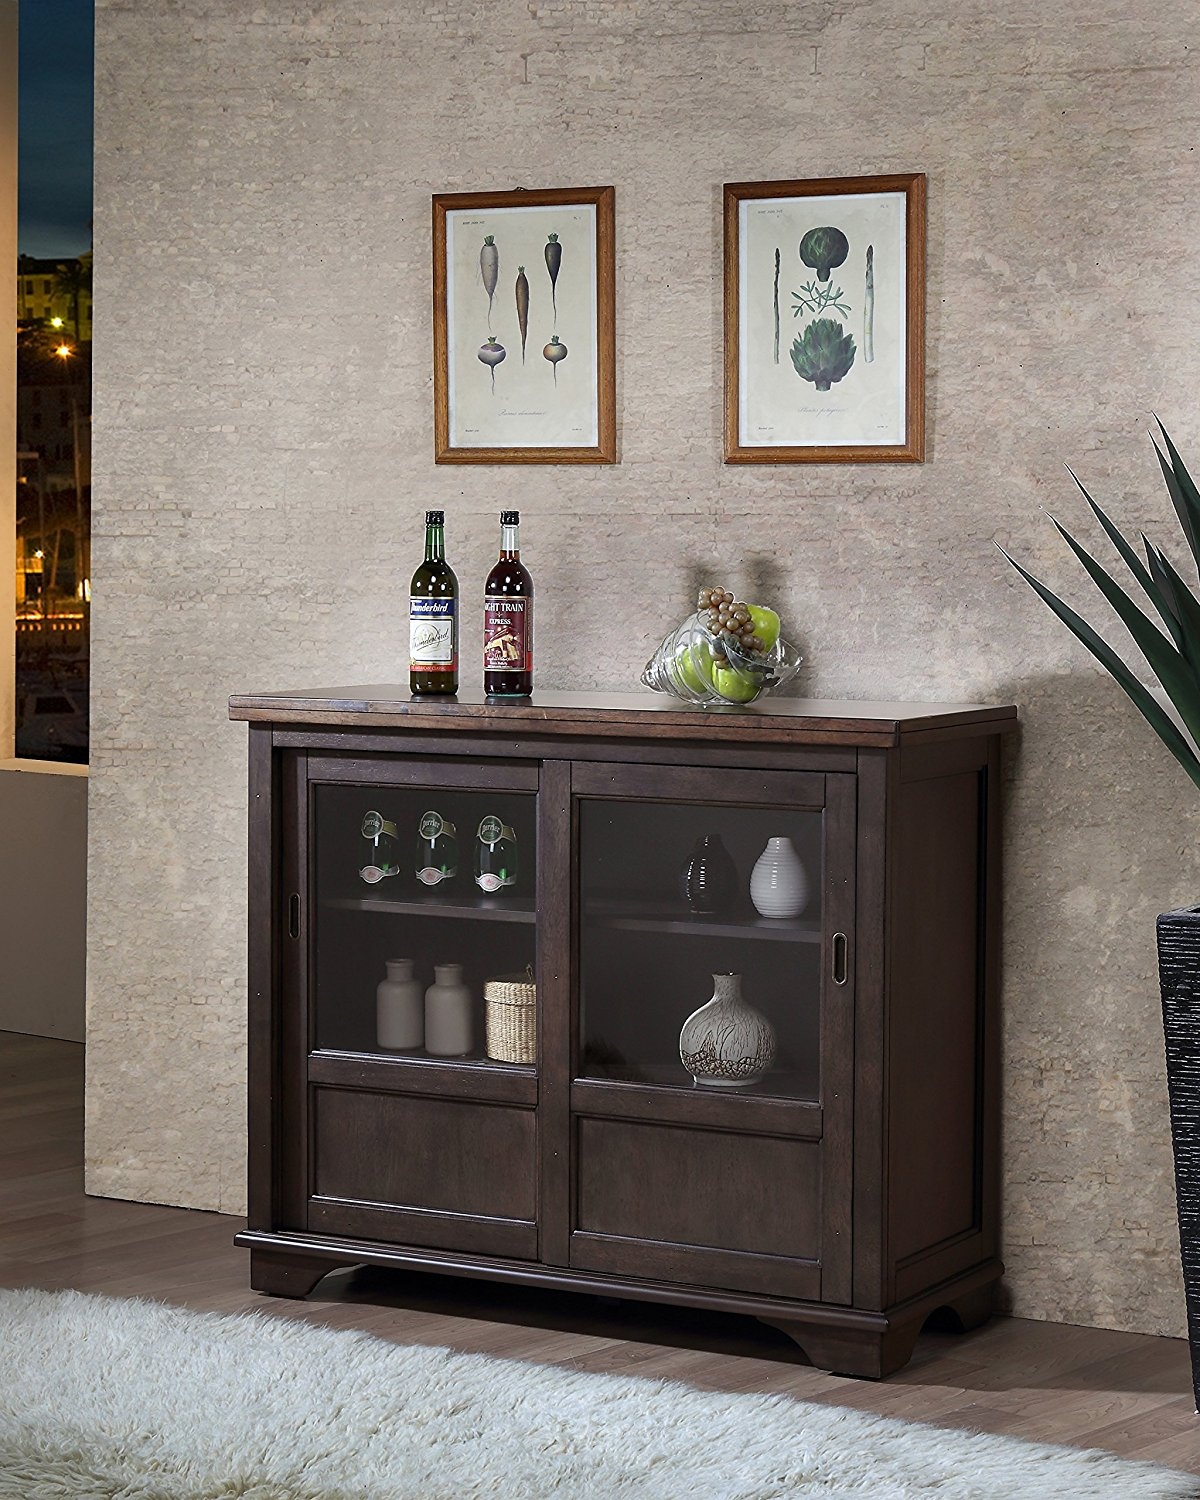 Buffet Sideboard With Wine Rack Cheap Wine Rack Buffet Find Wine Rack Buffet Deals On Line At